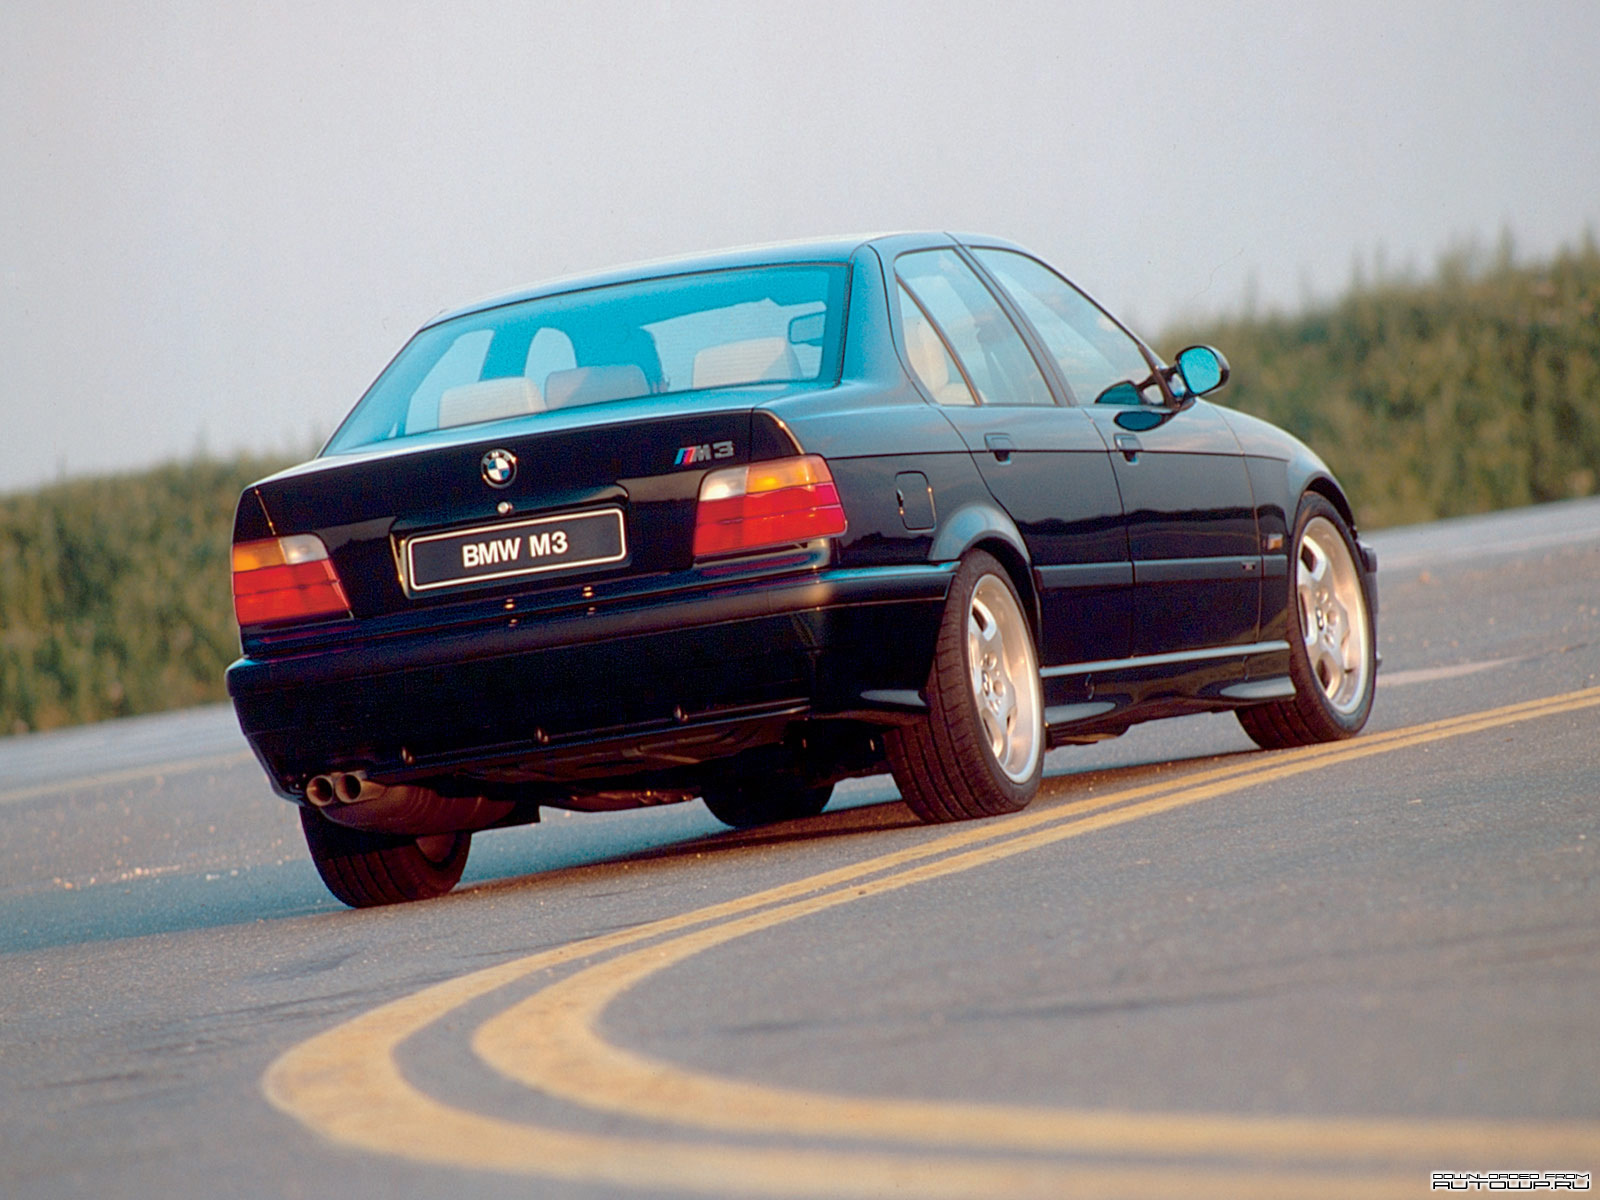 Power Bmw M3 Coupe E36 Photos Photogallery With 3 Pics Carsbase